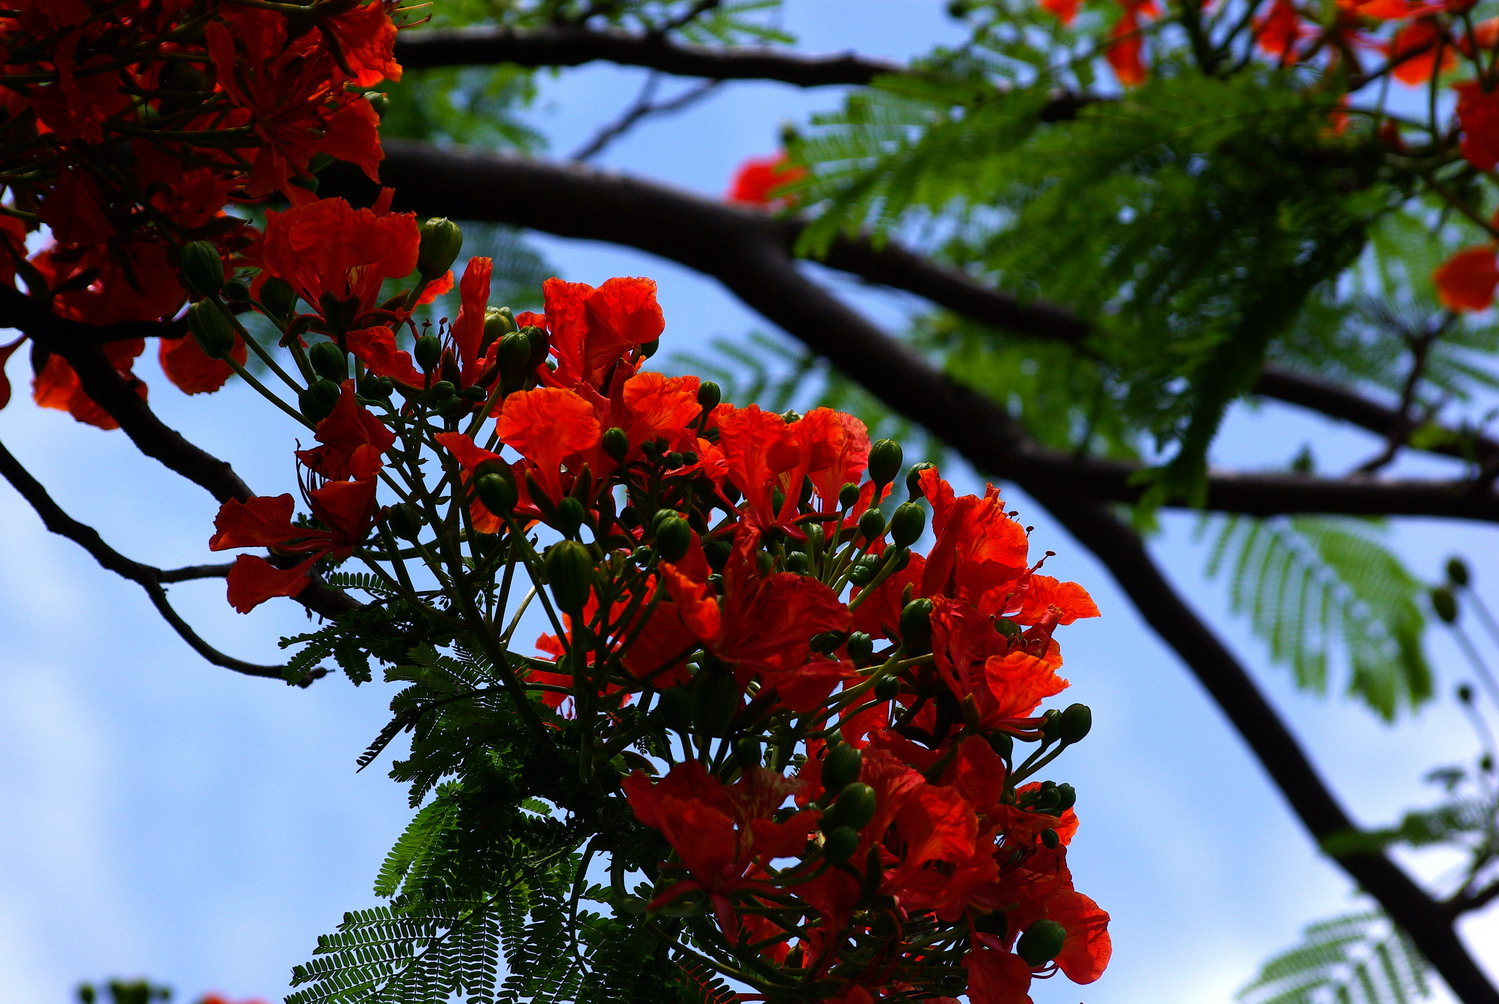 Flowers in blossom as summer comes in Sanya